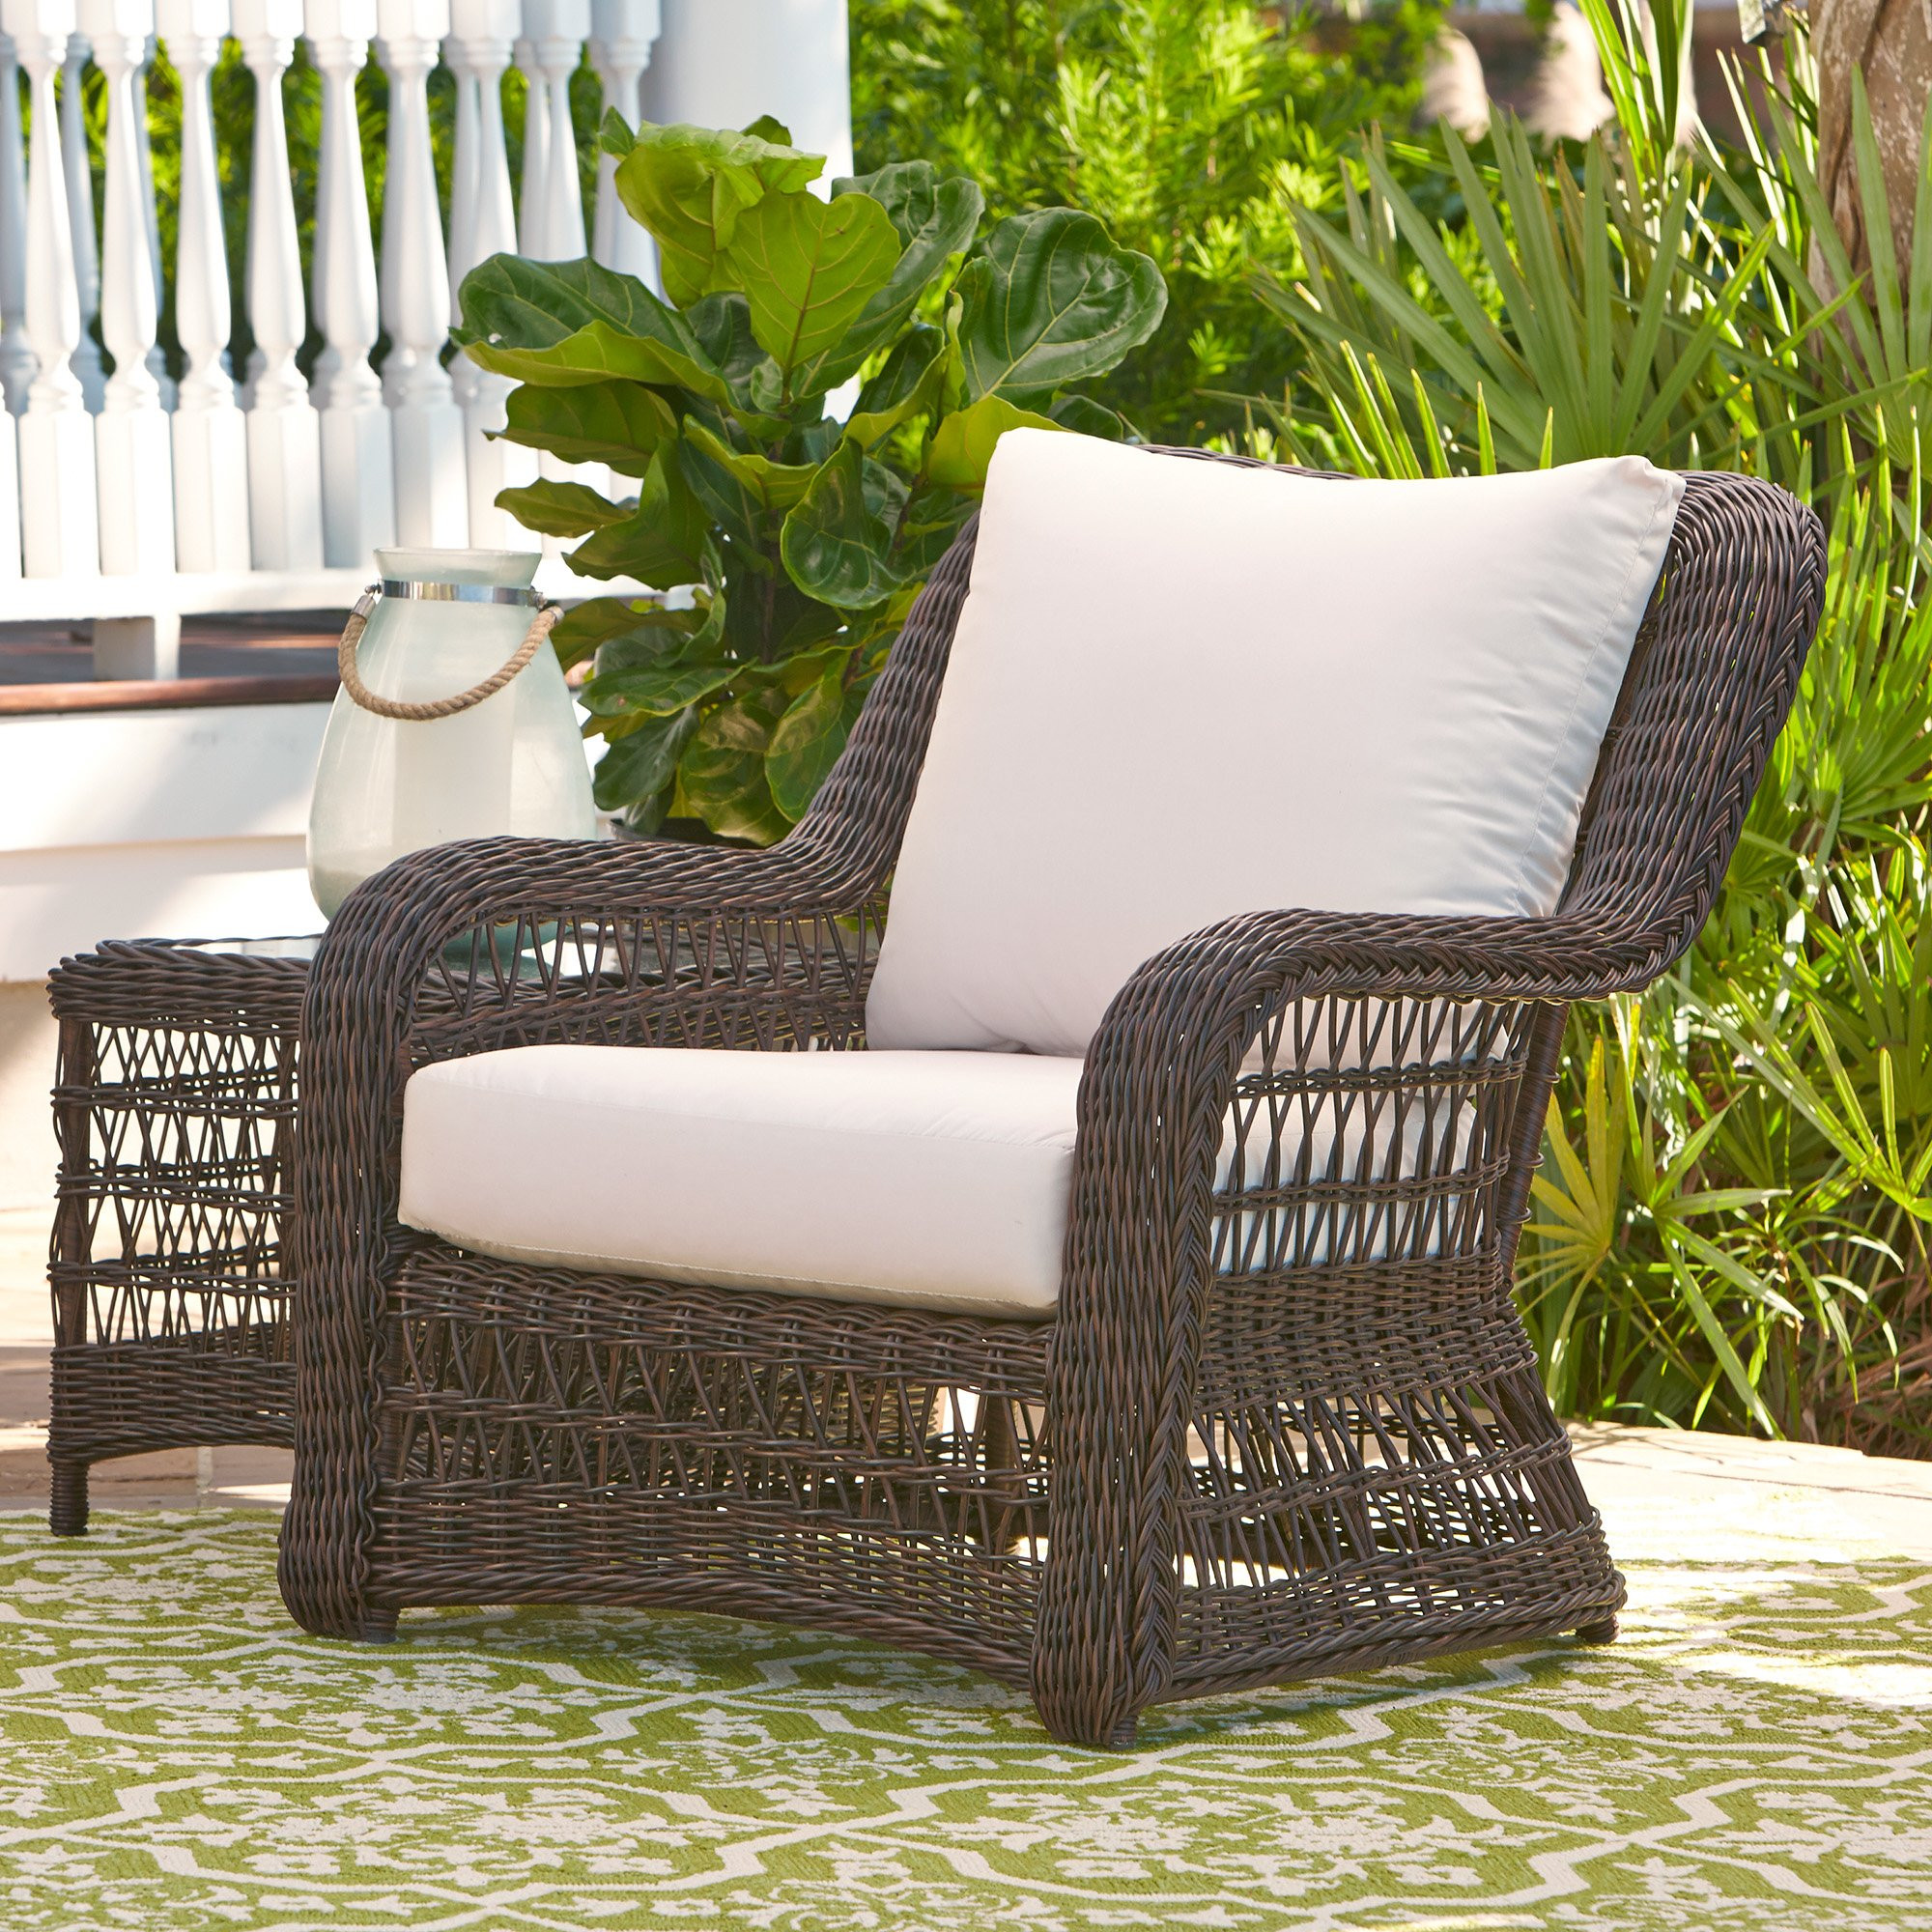 Best ideas about Sunbrella Outdoor Furniture . Save or Pin Cushion fort Sunbrella Cushions Clearance — Tvhighway Now.